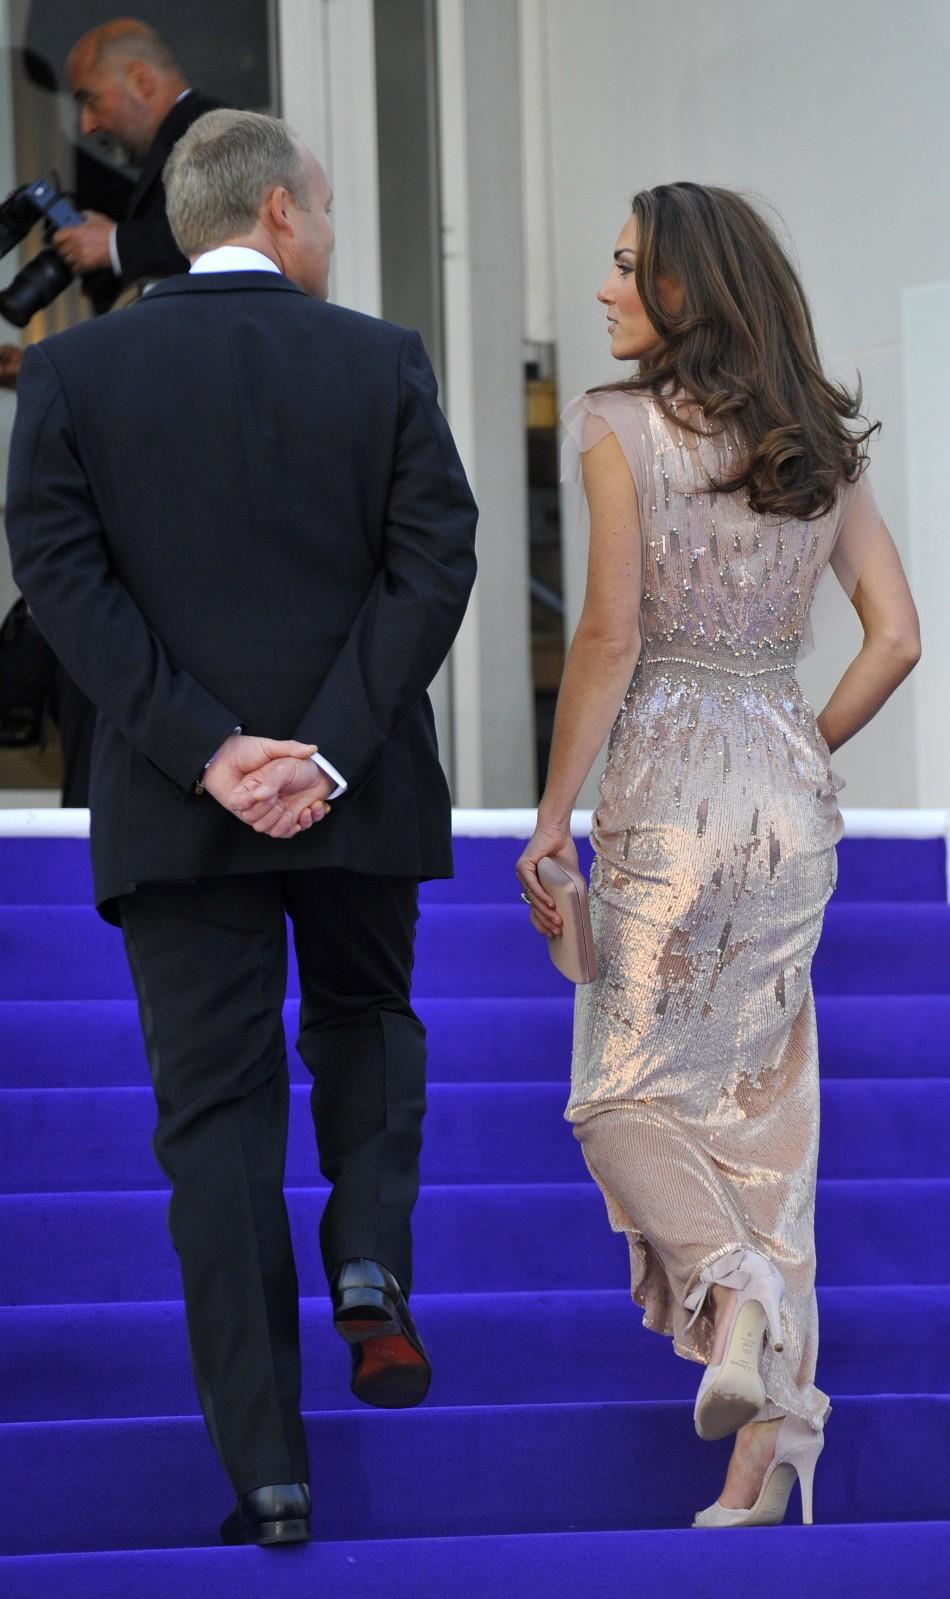 Stunningly dressed Kate Middleton steals the show at a charity gala